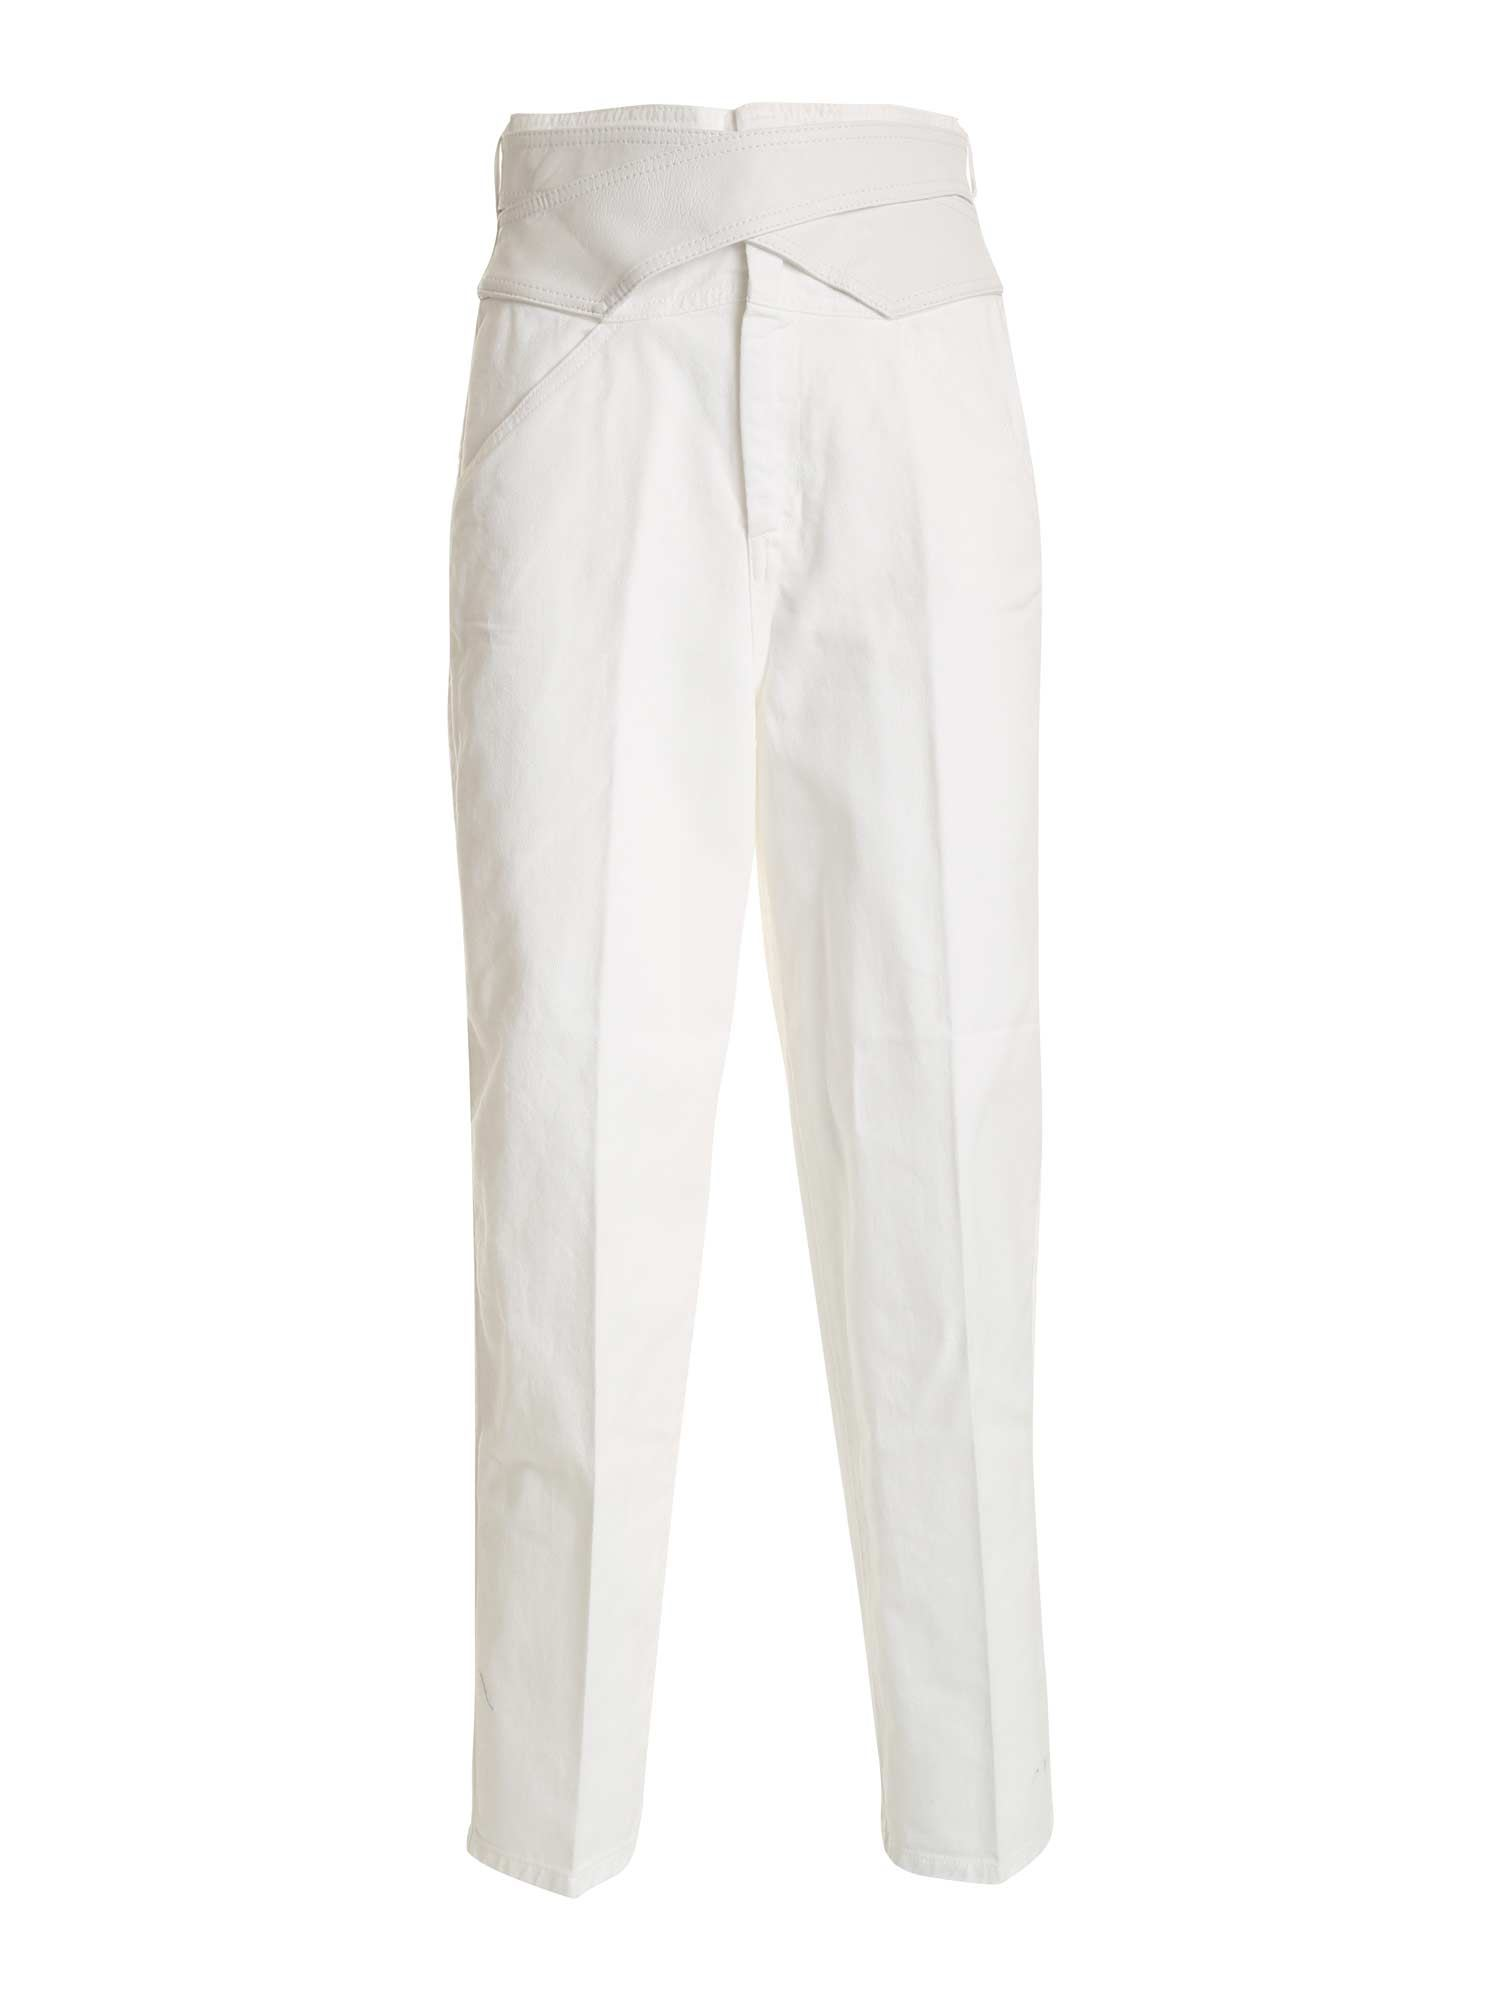 Pinko PINKO SHELBY 2 SLIM JEANS IN WHITE